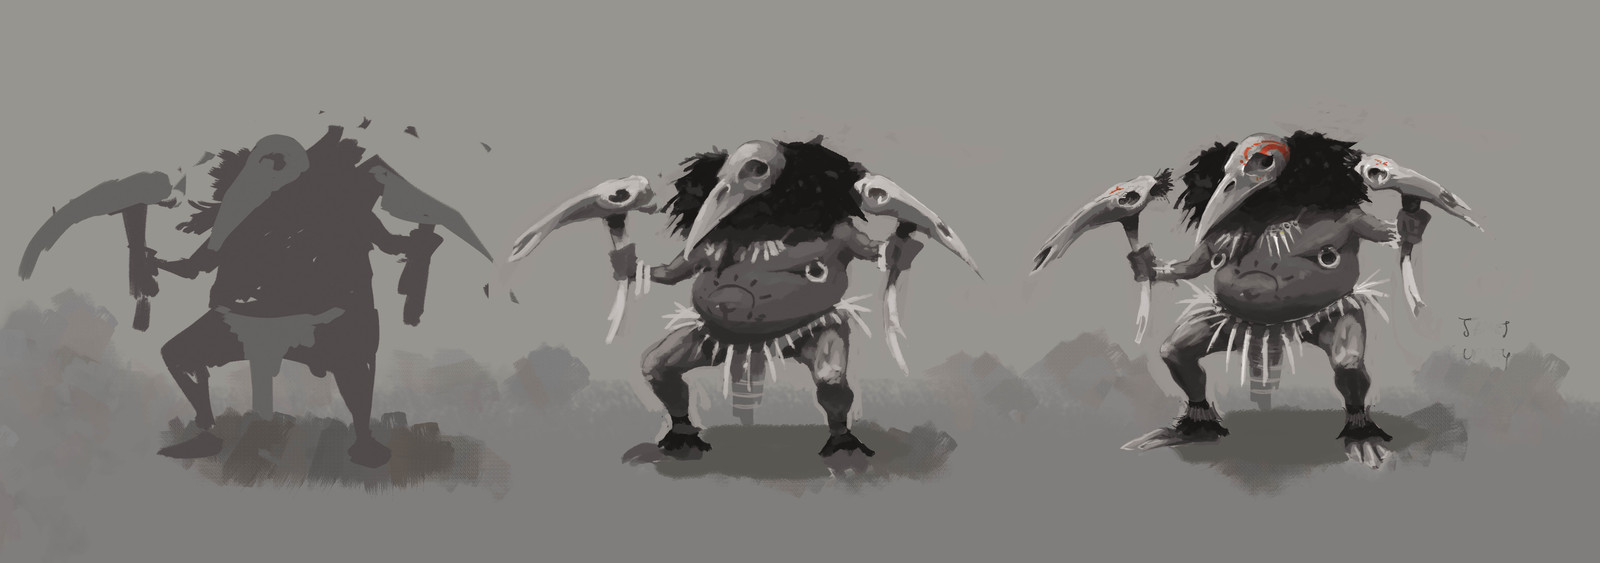 Crowwarrior concept